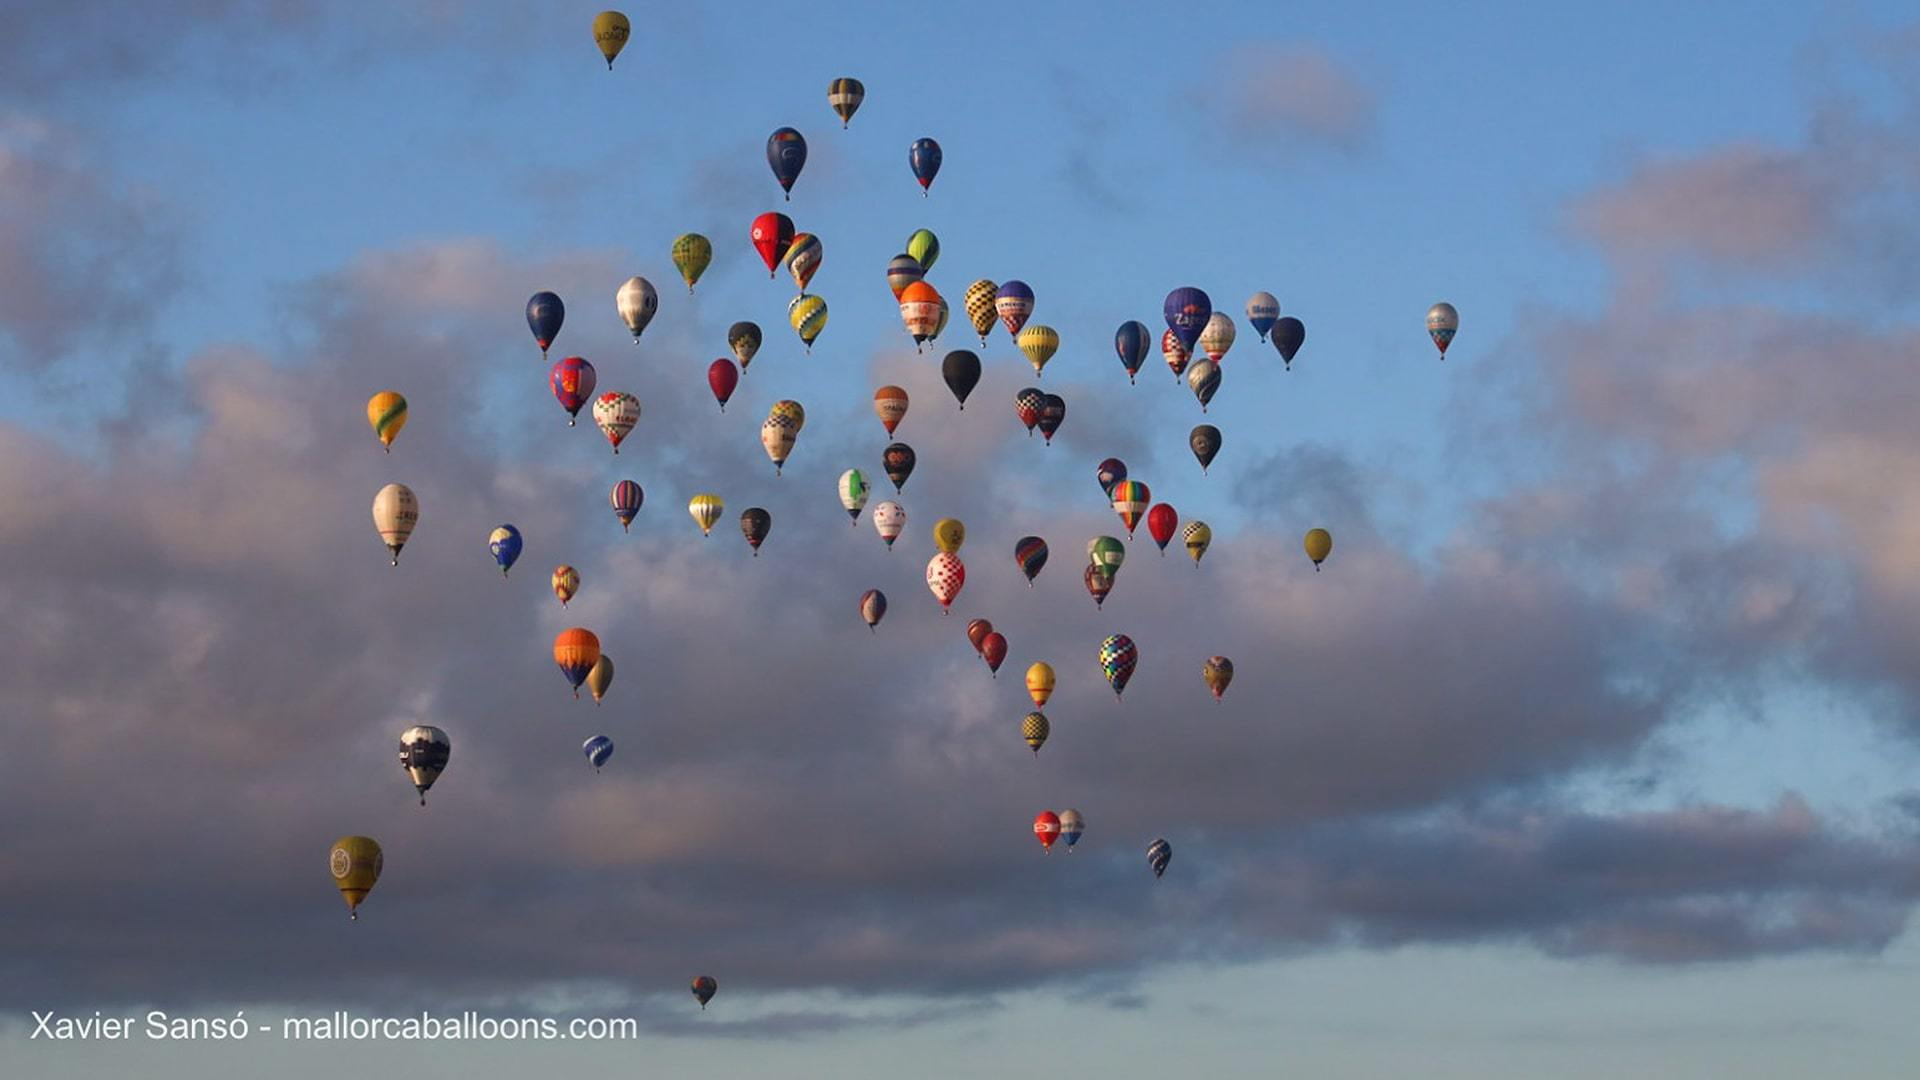 Mallorca europeans hot air balloons championships hot air balloons in the sky min